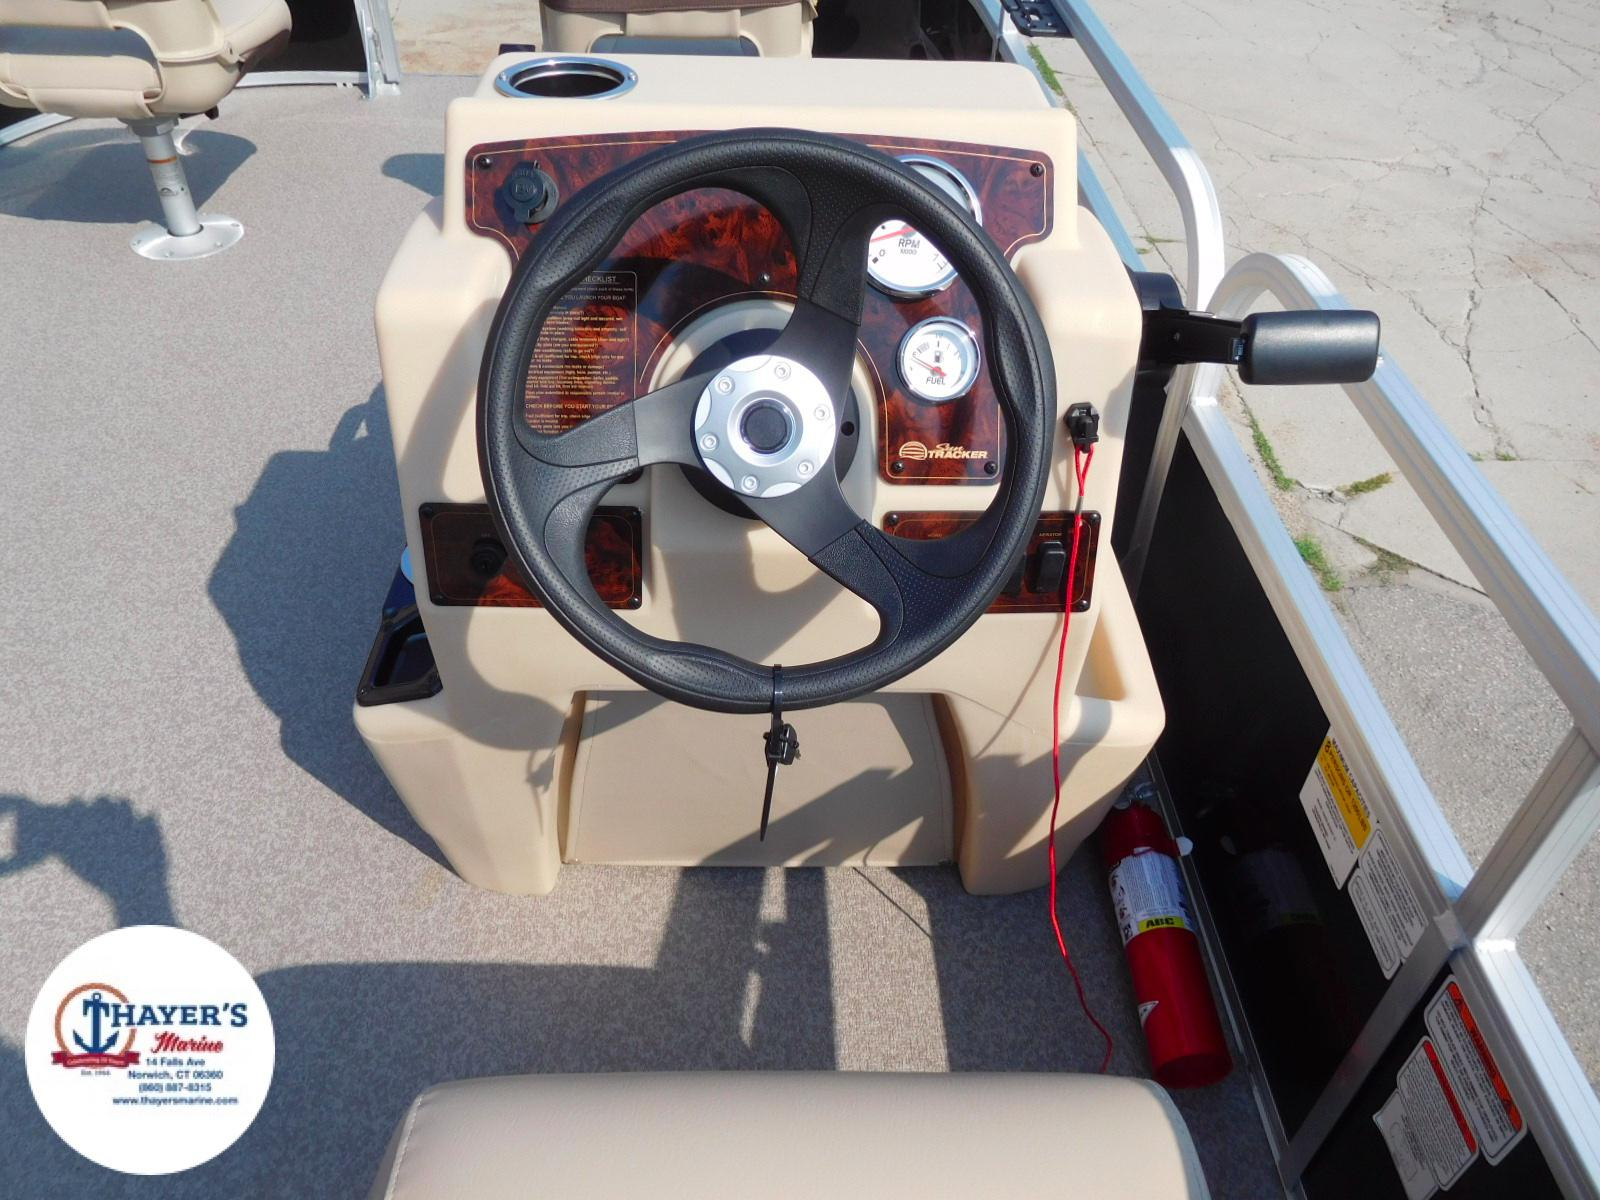 2018 Sun Tracker boat for sale, model of the boat is Bass Buggy 18 DLX & Image # 14 of 35